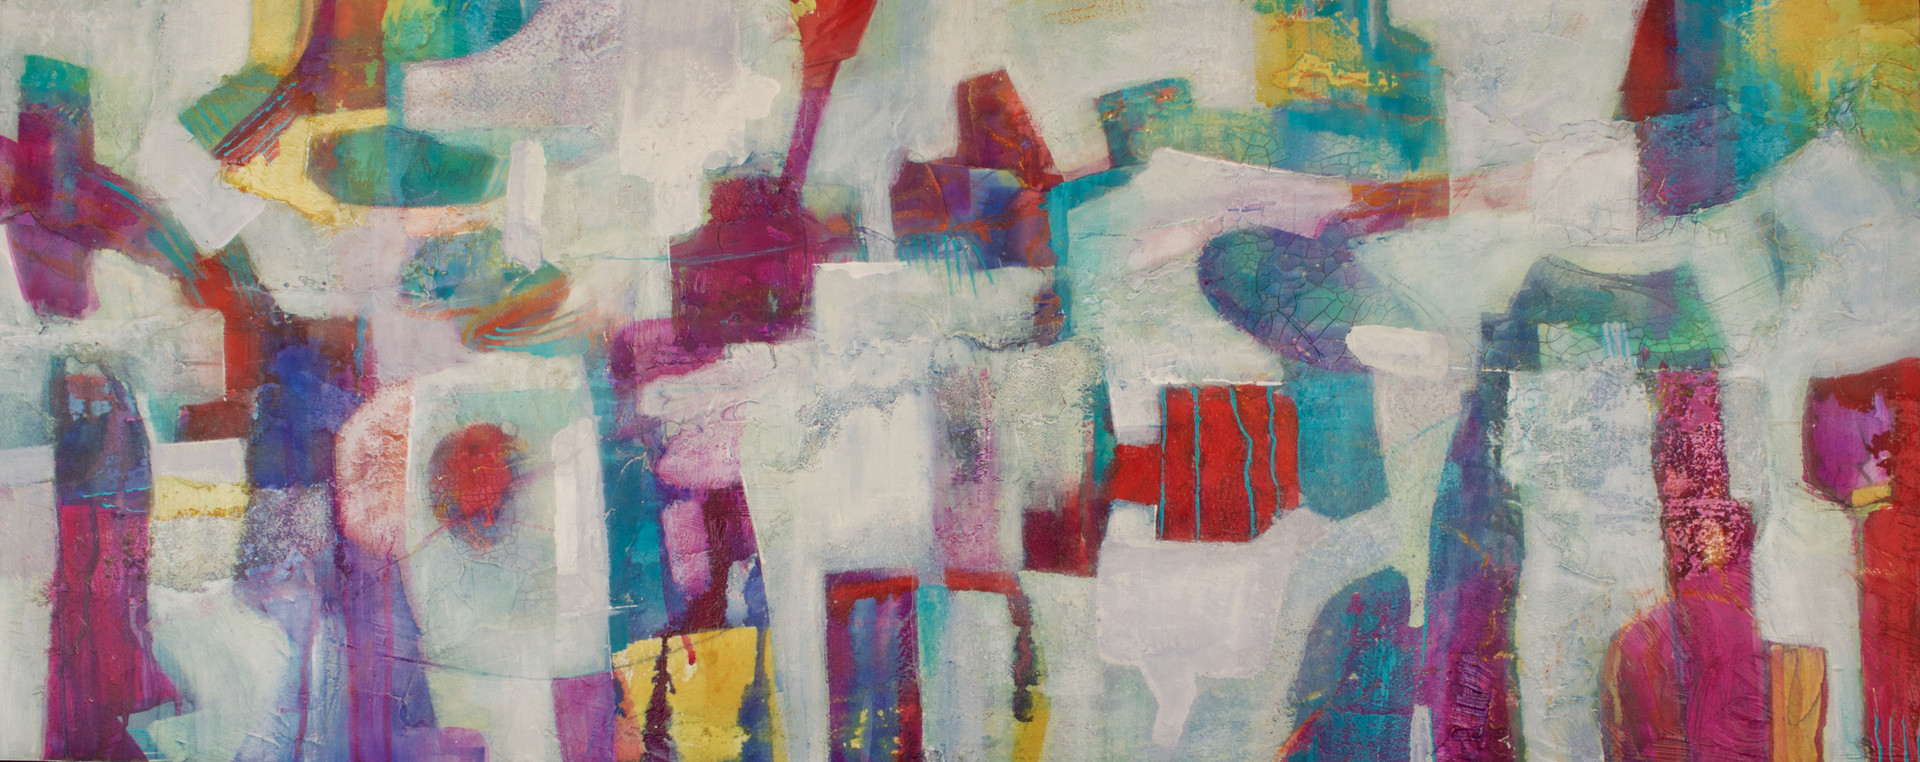 Life in the City  16 x 39